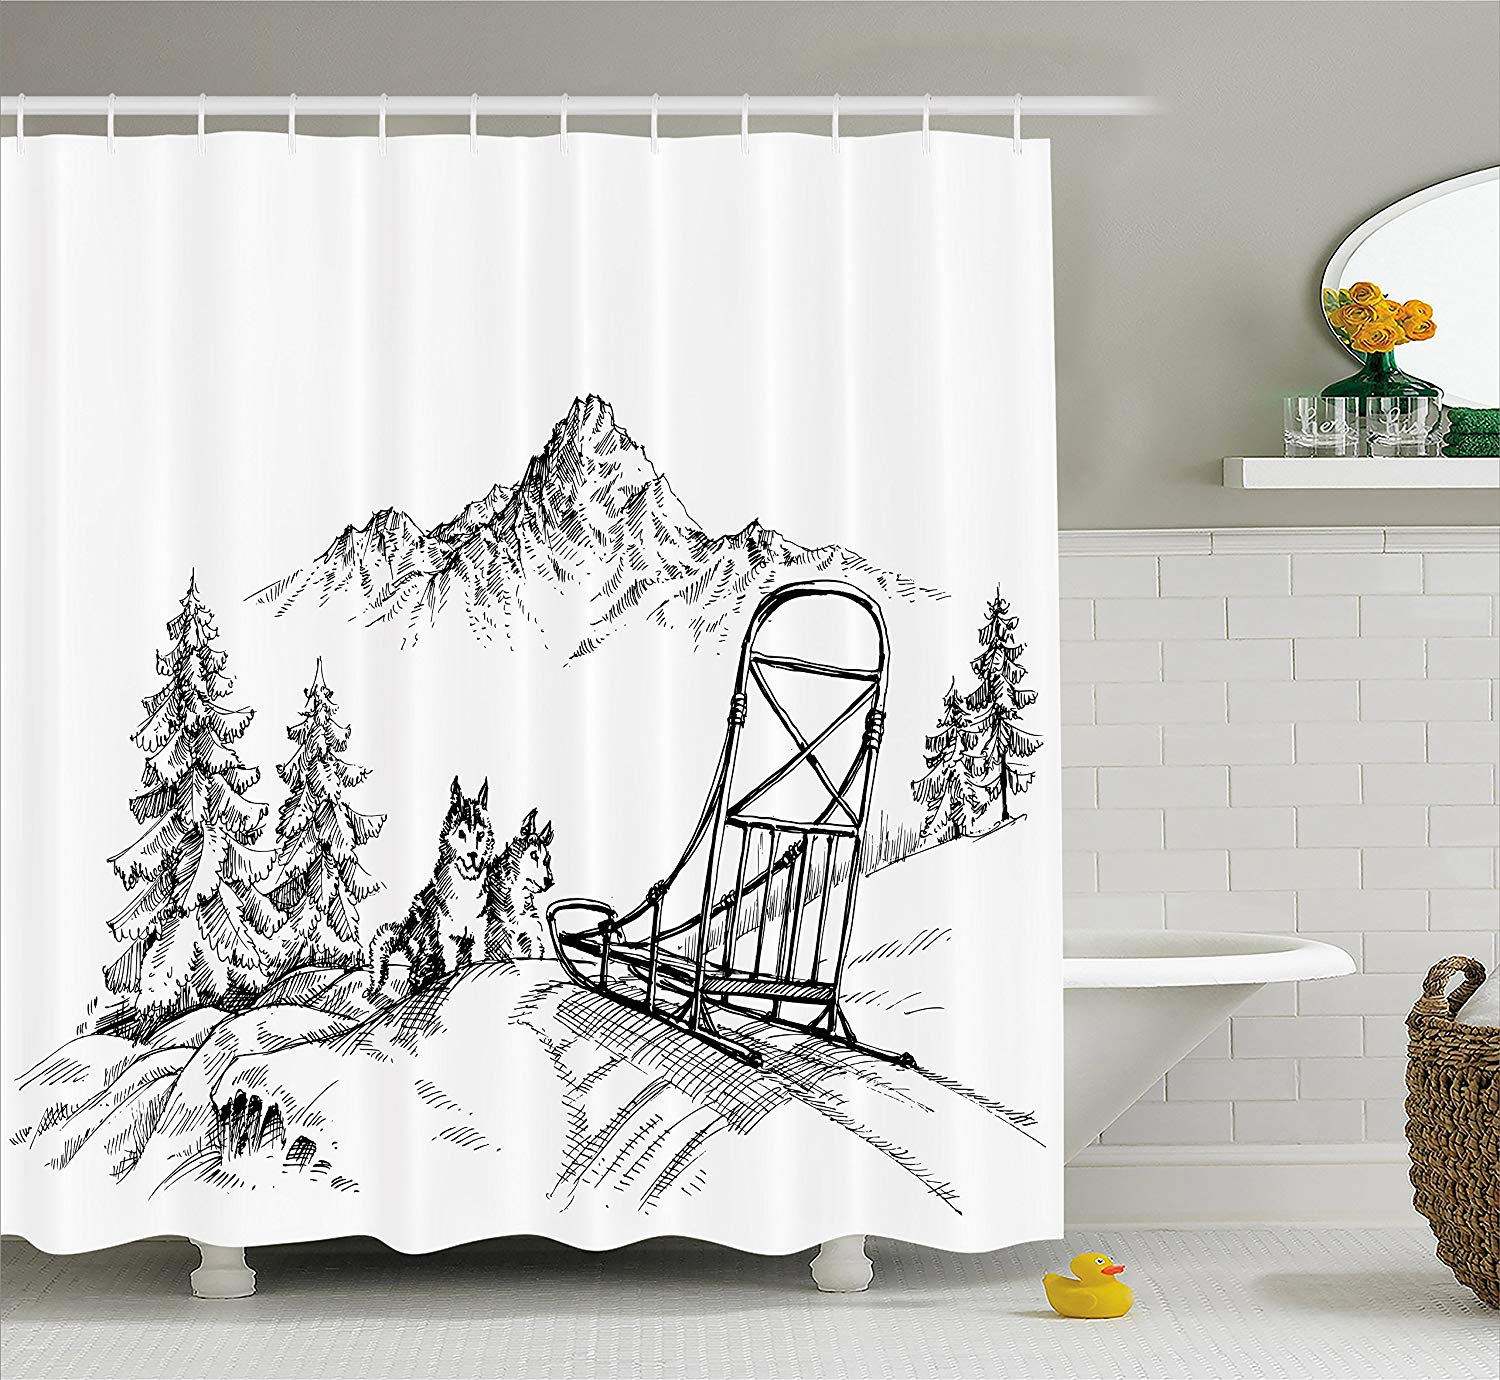 Waterproof Dalmatians Christmas Sleigh Shower Curtain